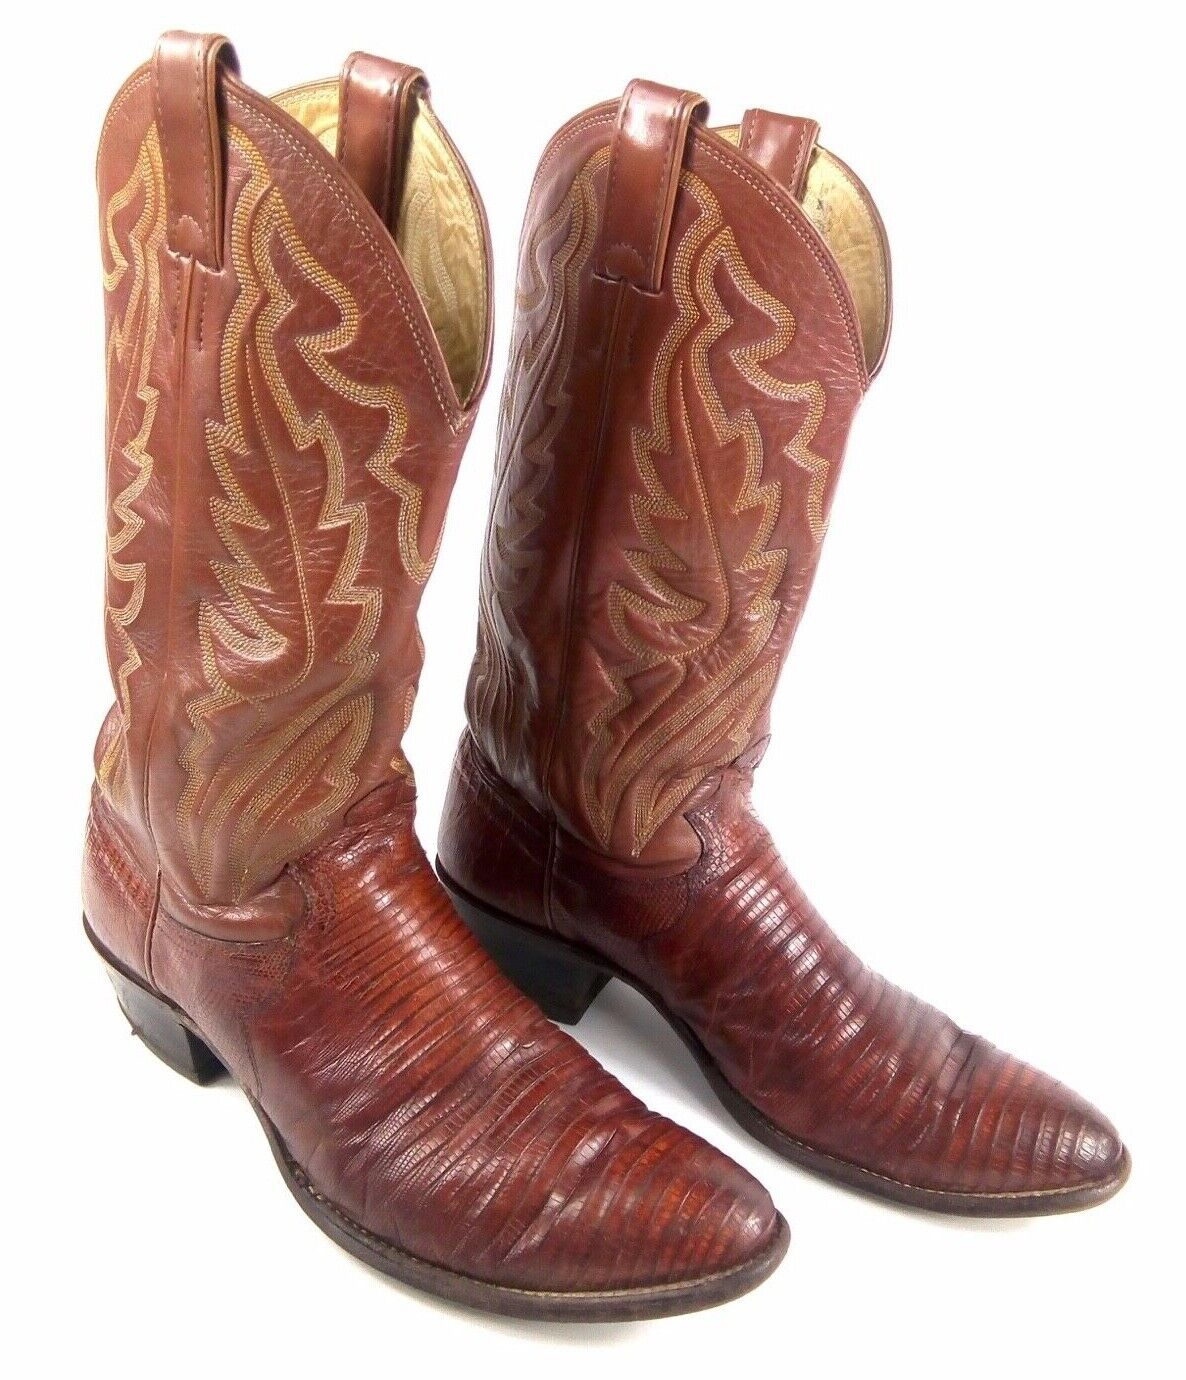 JUSTIN Men Brown 9.5B Peanut Brittle Lizard Skin Leather Cowboy Boots